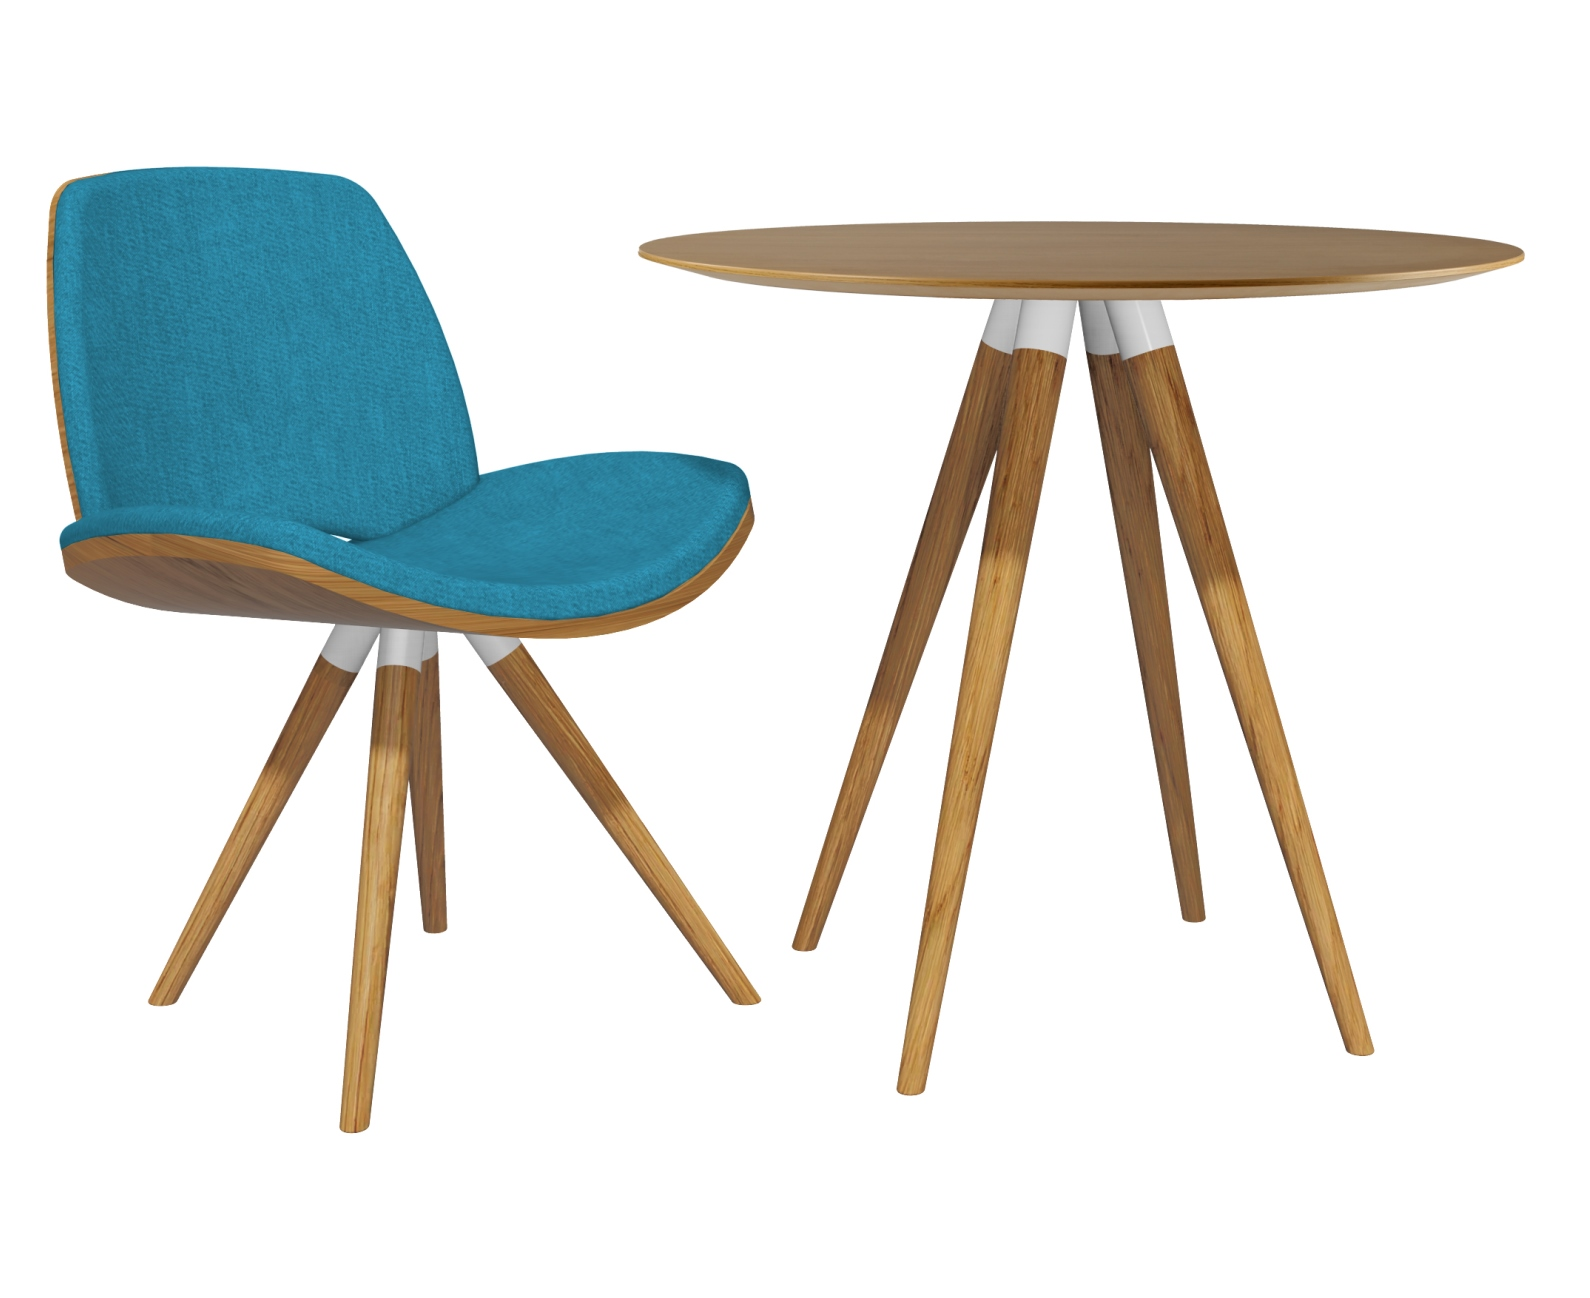 Contemporary Wooden Dining Chairs : Era Wood from www.tehroony.com size 1590 x 1298 jpeg 308kB